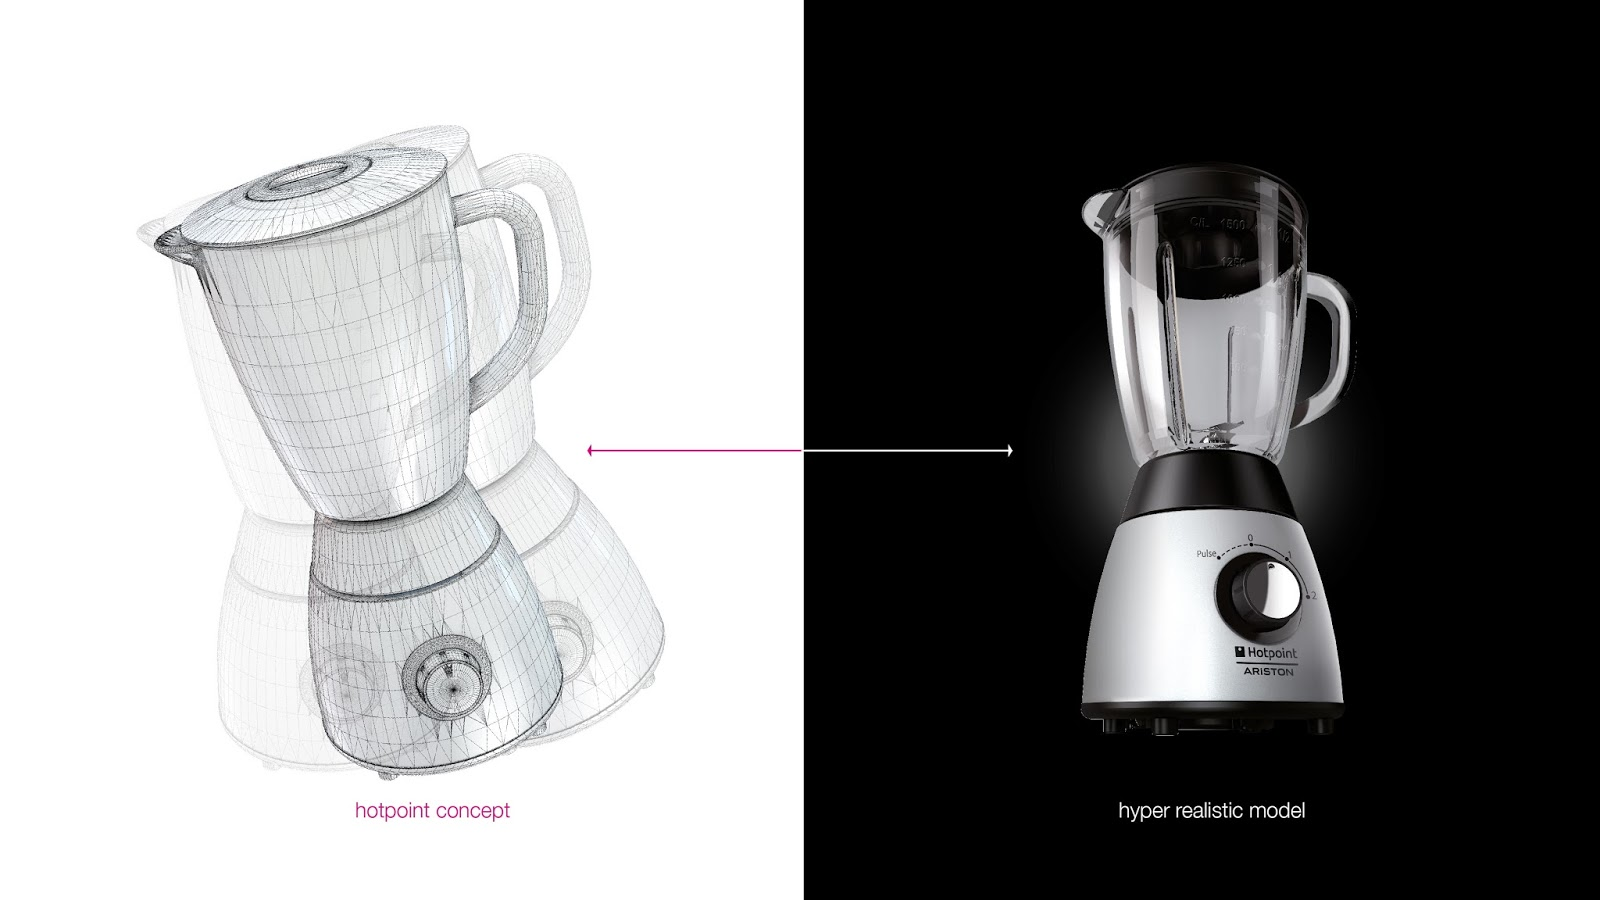 Hotpoint Ariston Small Kitchen Appliances on Packaging of the World ...